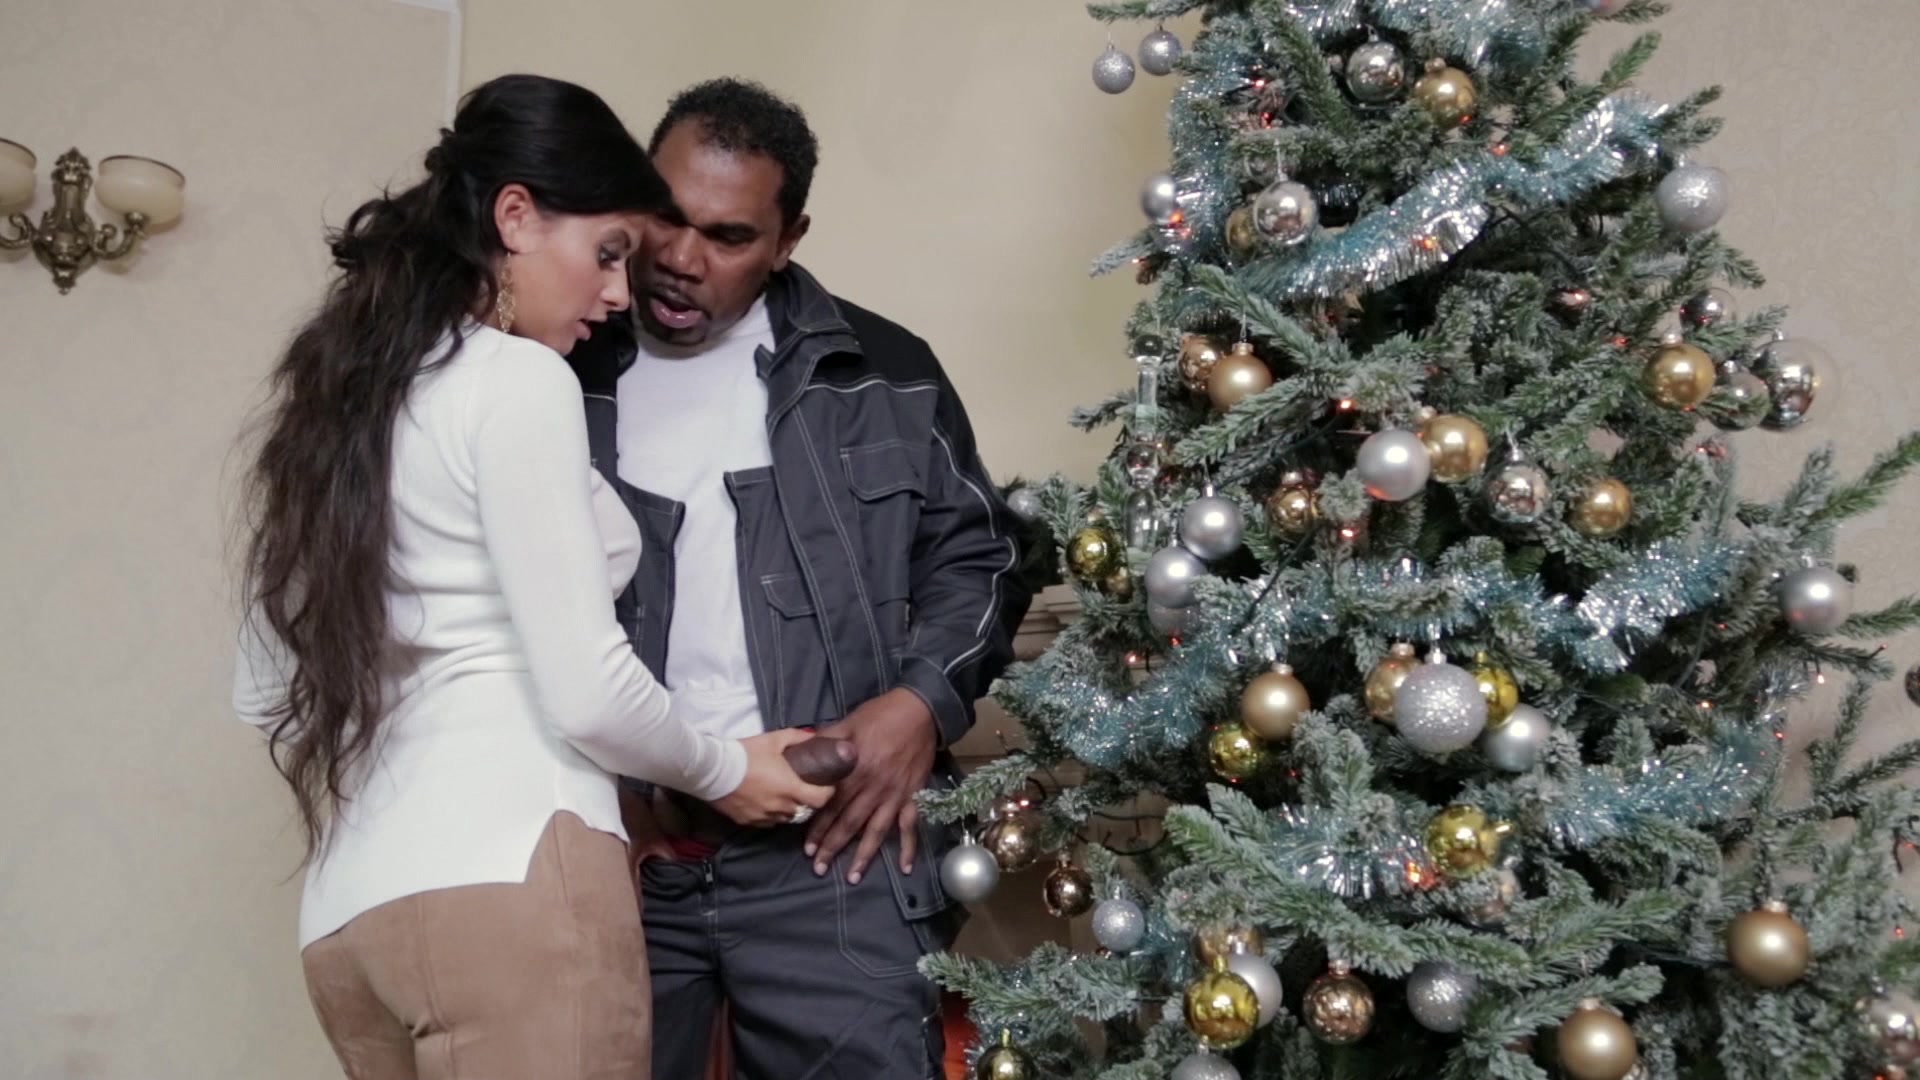 Fucking under the christmas tree useful topic